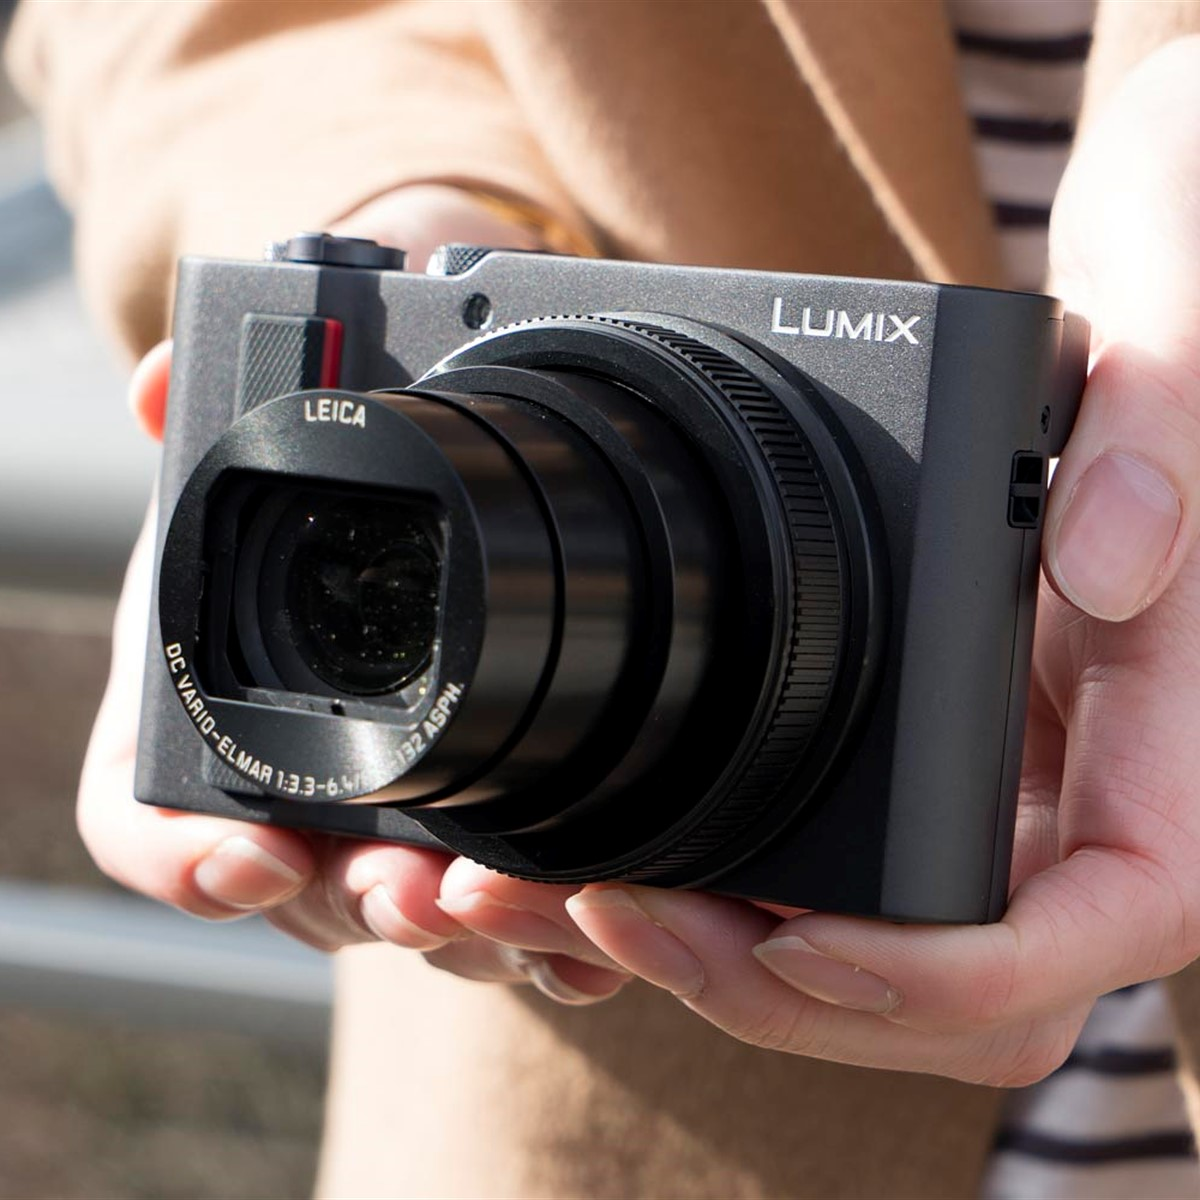 Hands-on with Panasonic Lumix DC-ZS200 / TZ200: Digital